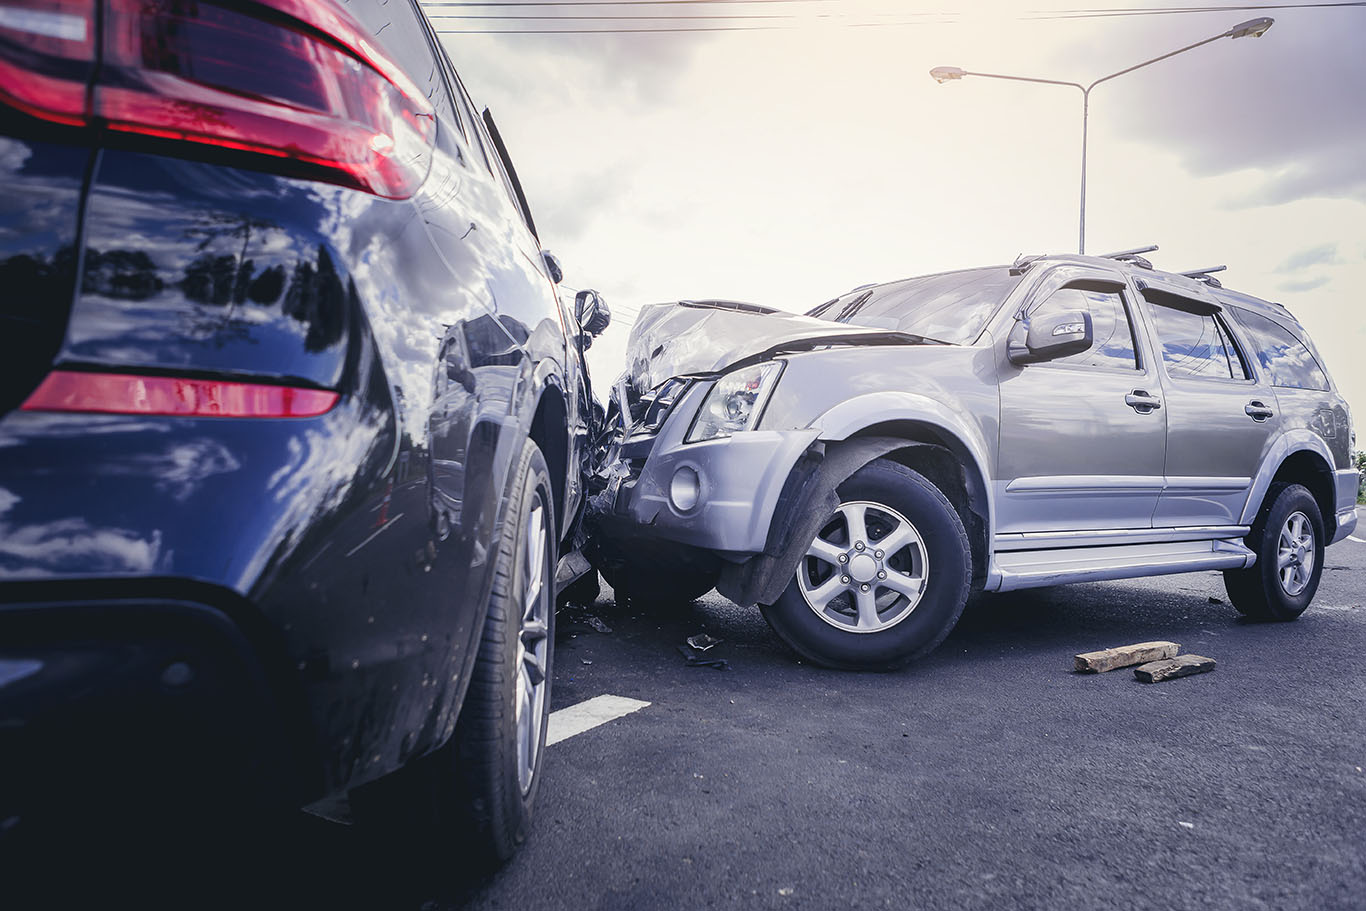 Who Pays for Personal Injuries After a Car or Truck Accident in Florida?